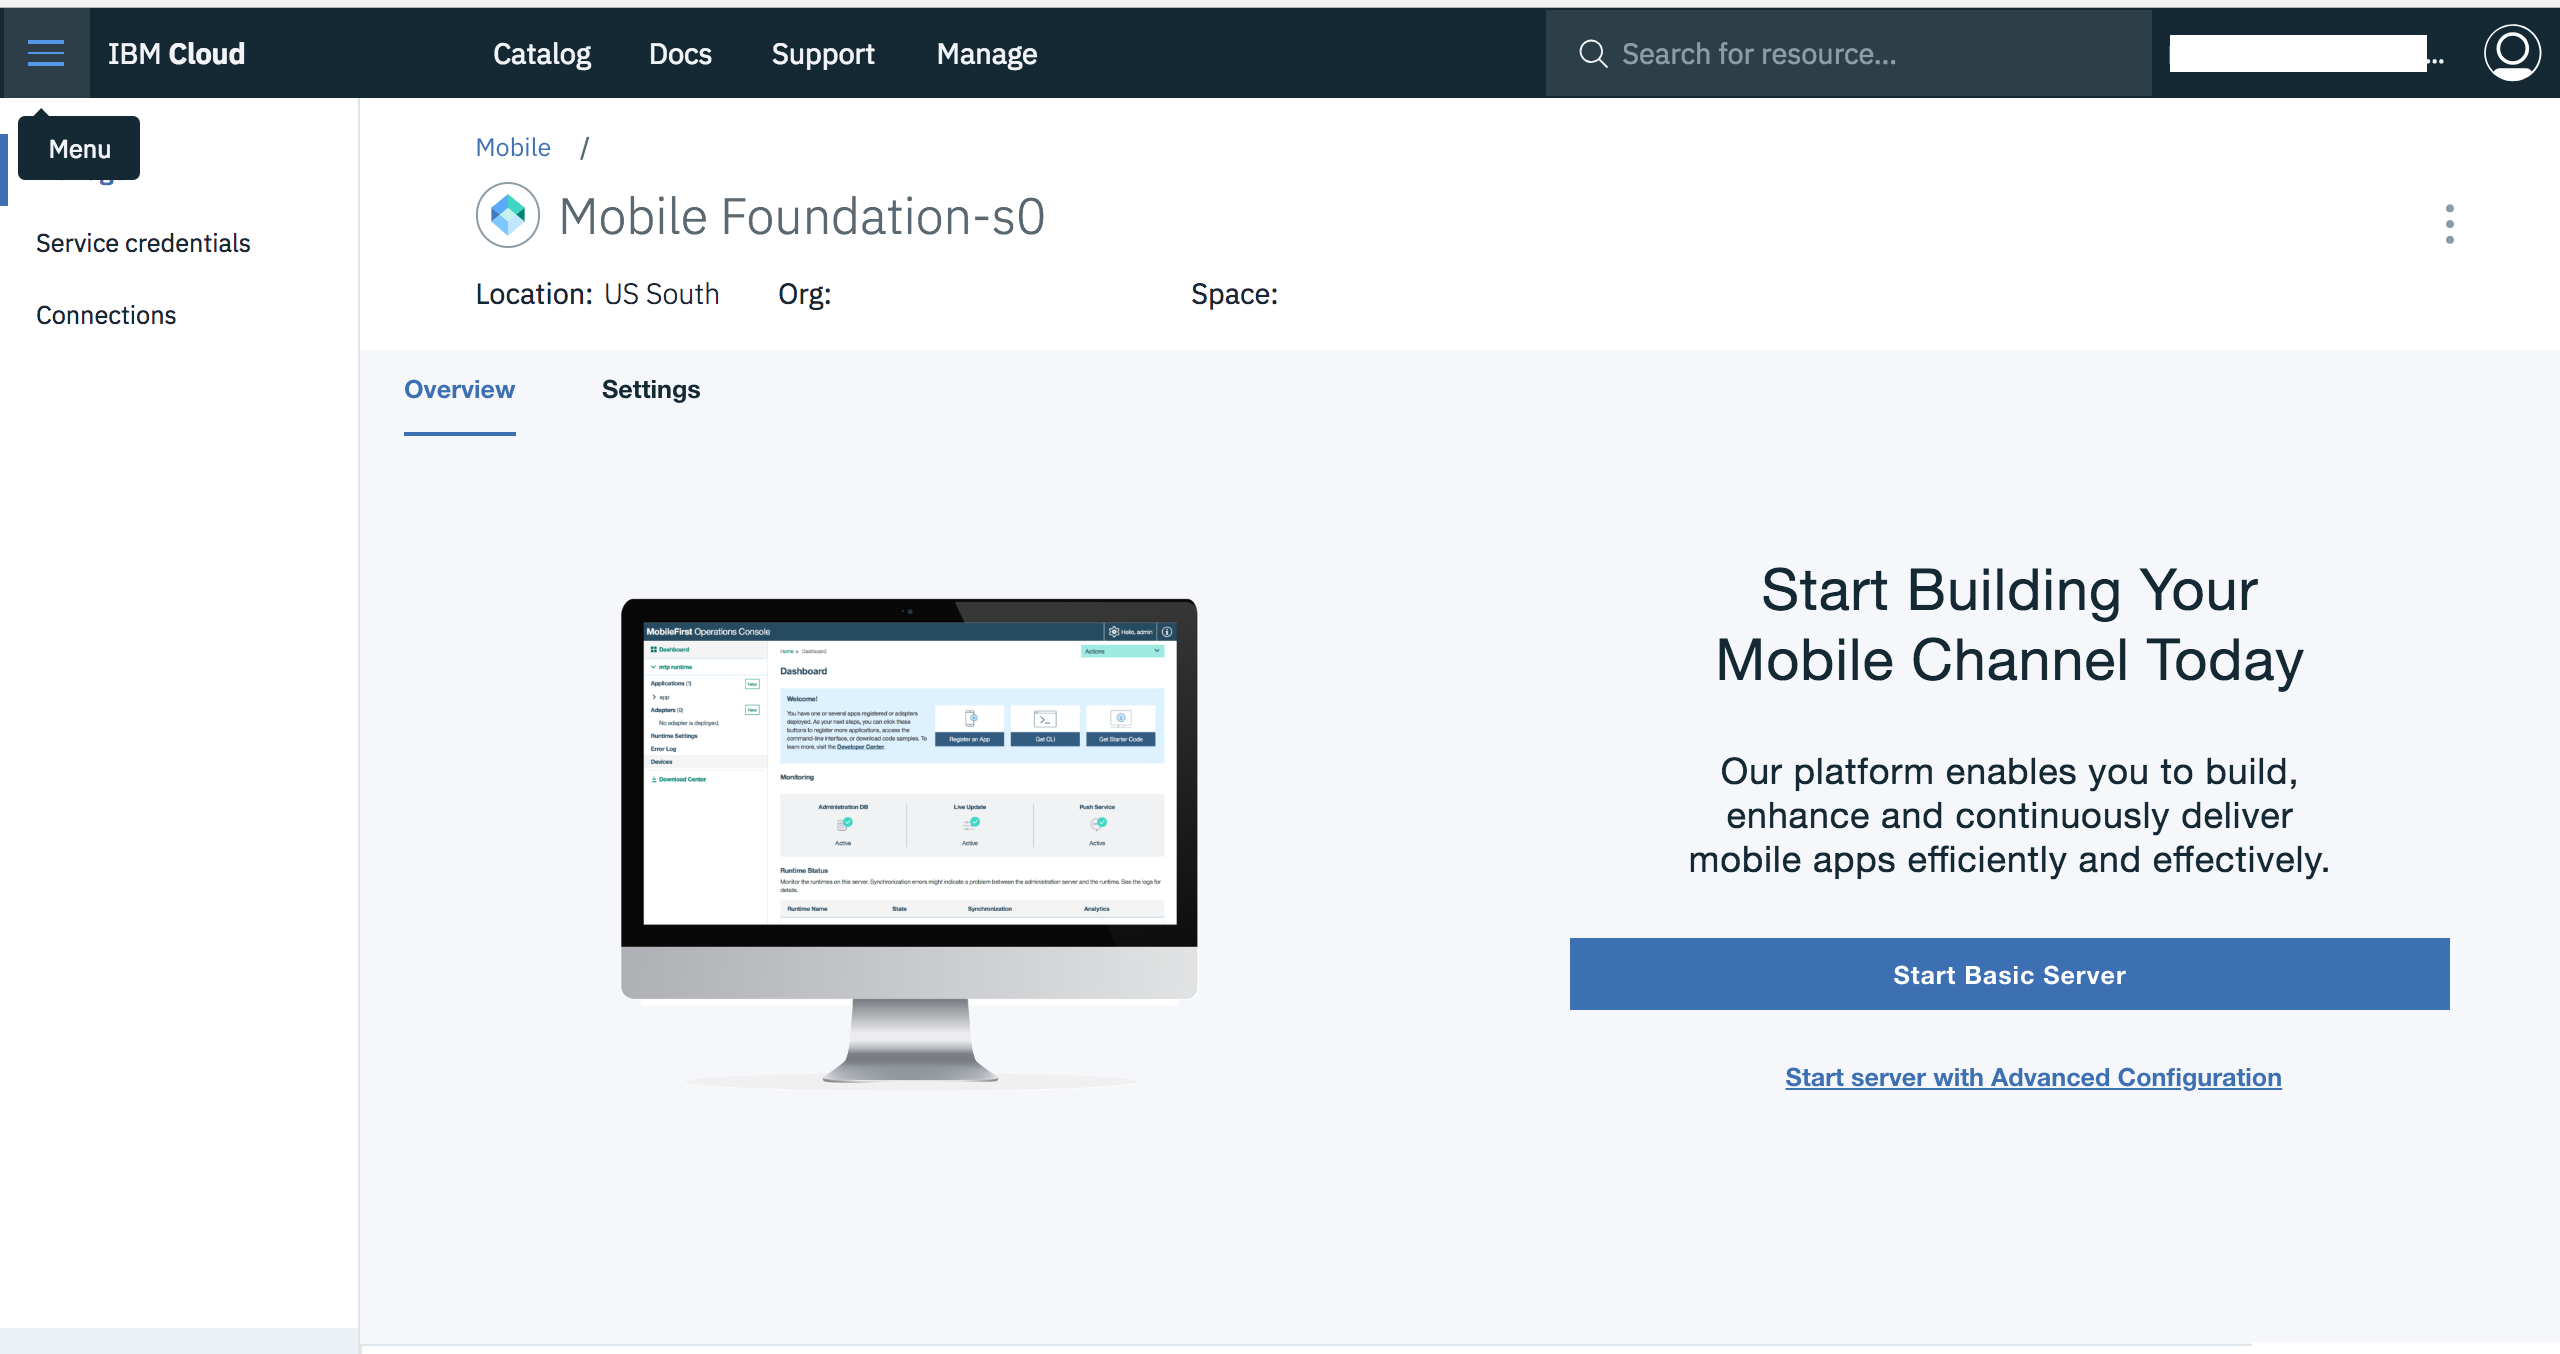 Using Mobile Foundation service on IBM Cloud - IBM Mobile